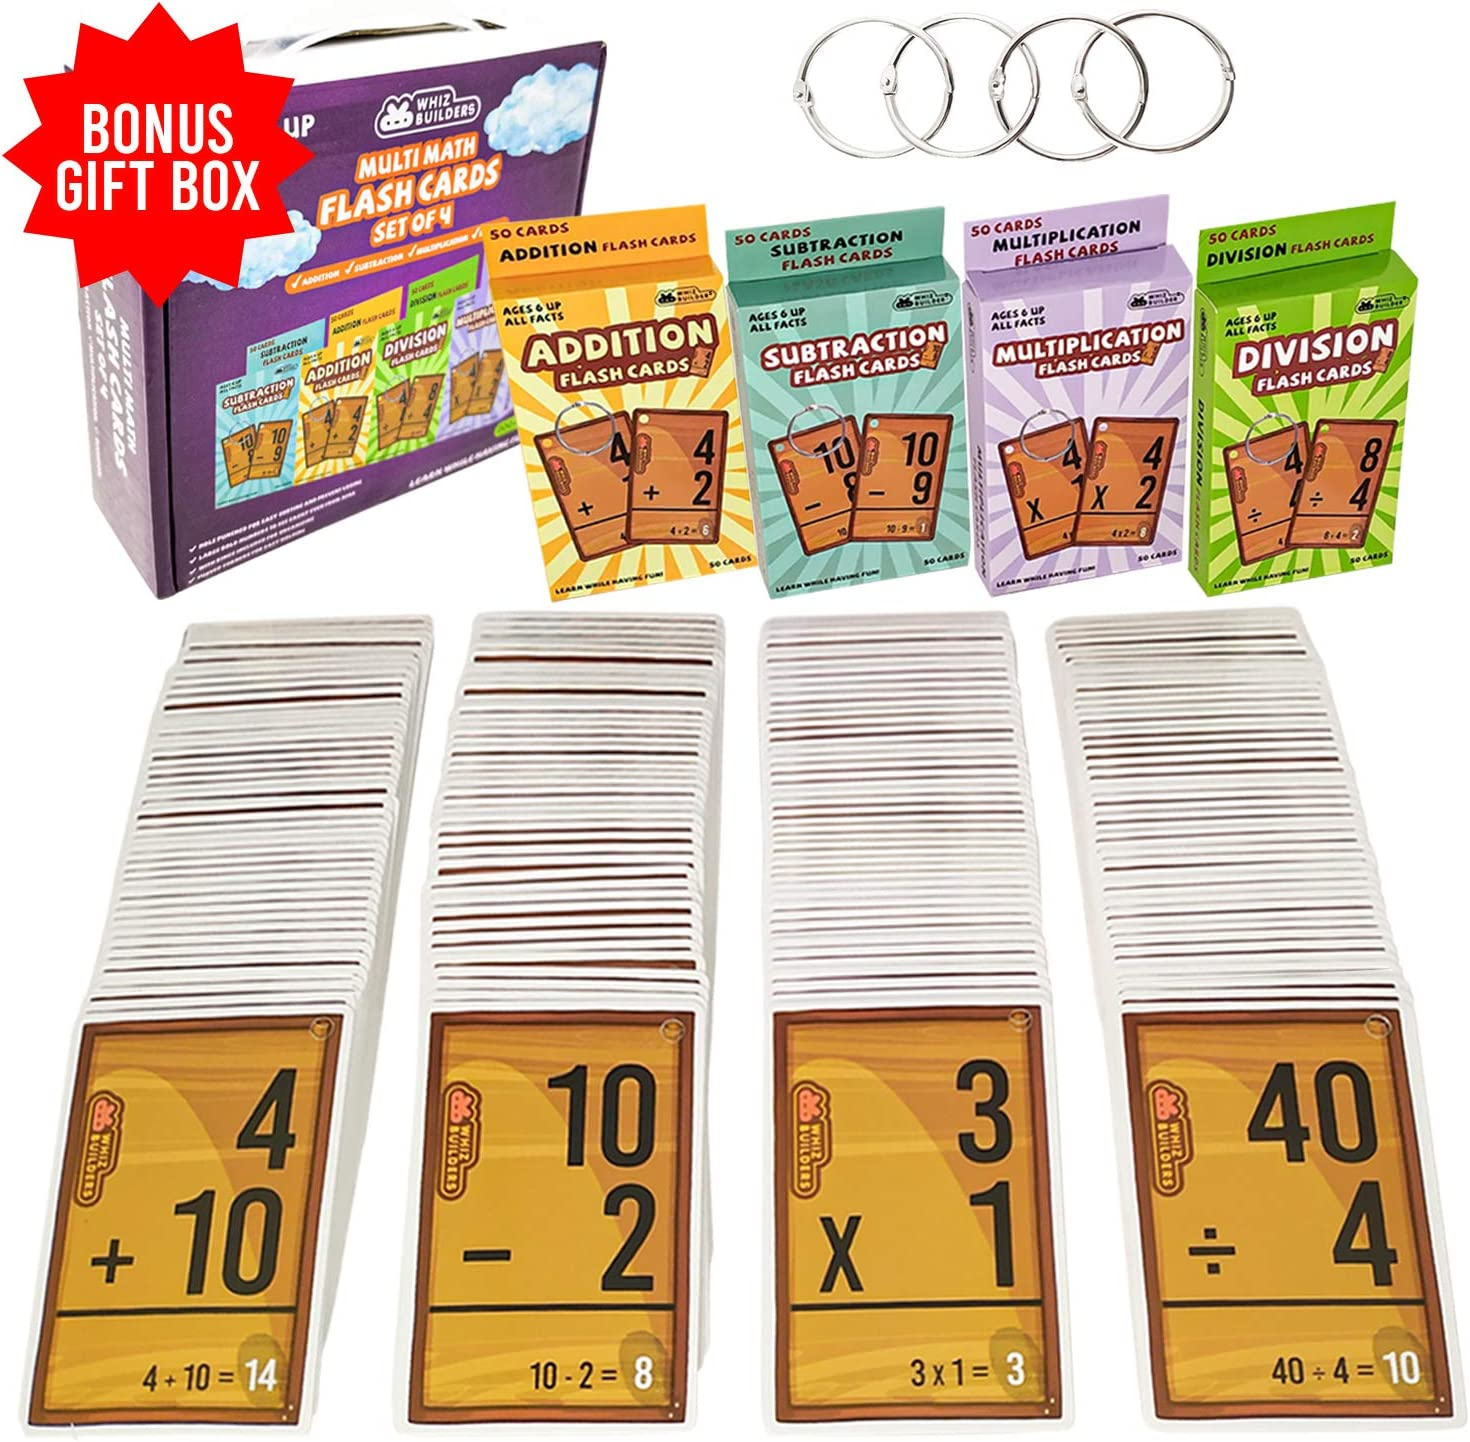 WhizBuilders Multi Math Flash Cards Addition, Subtraction, Division and Multiplication Flash Cards Bundle - Educational Learning Kindergarten Flashcards for 1st, 2nd, 3rd, 4th, 5th and 6th Grade